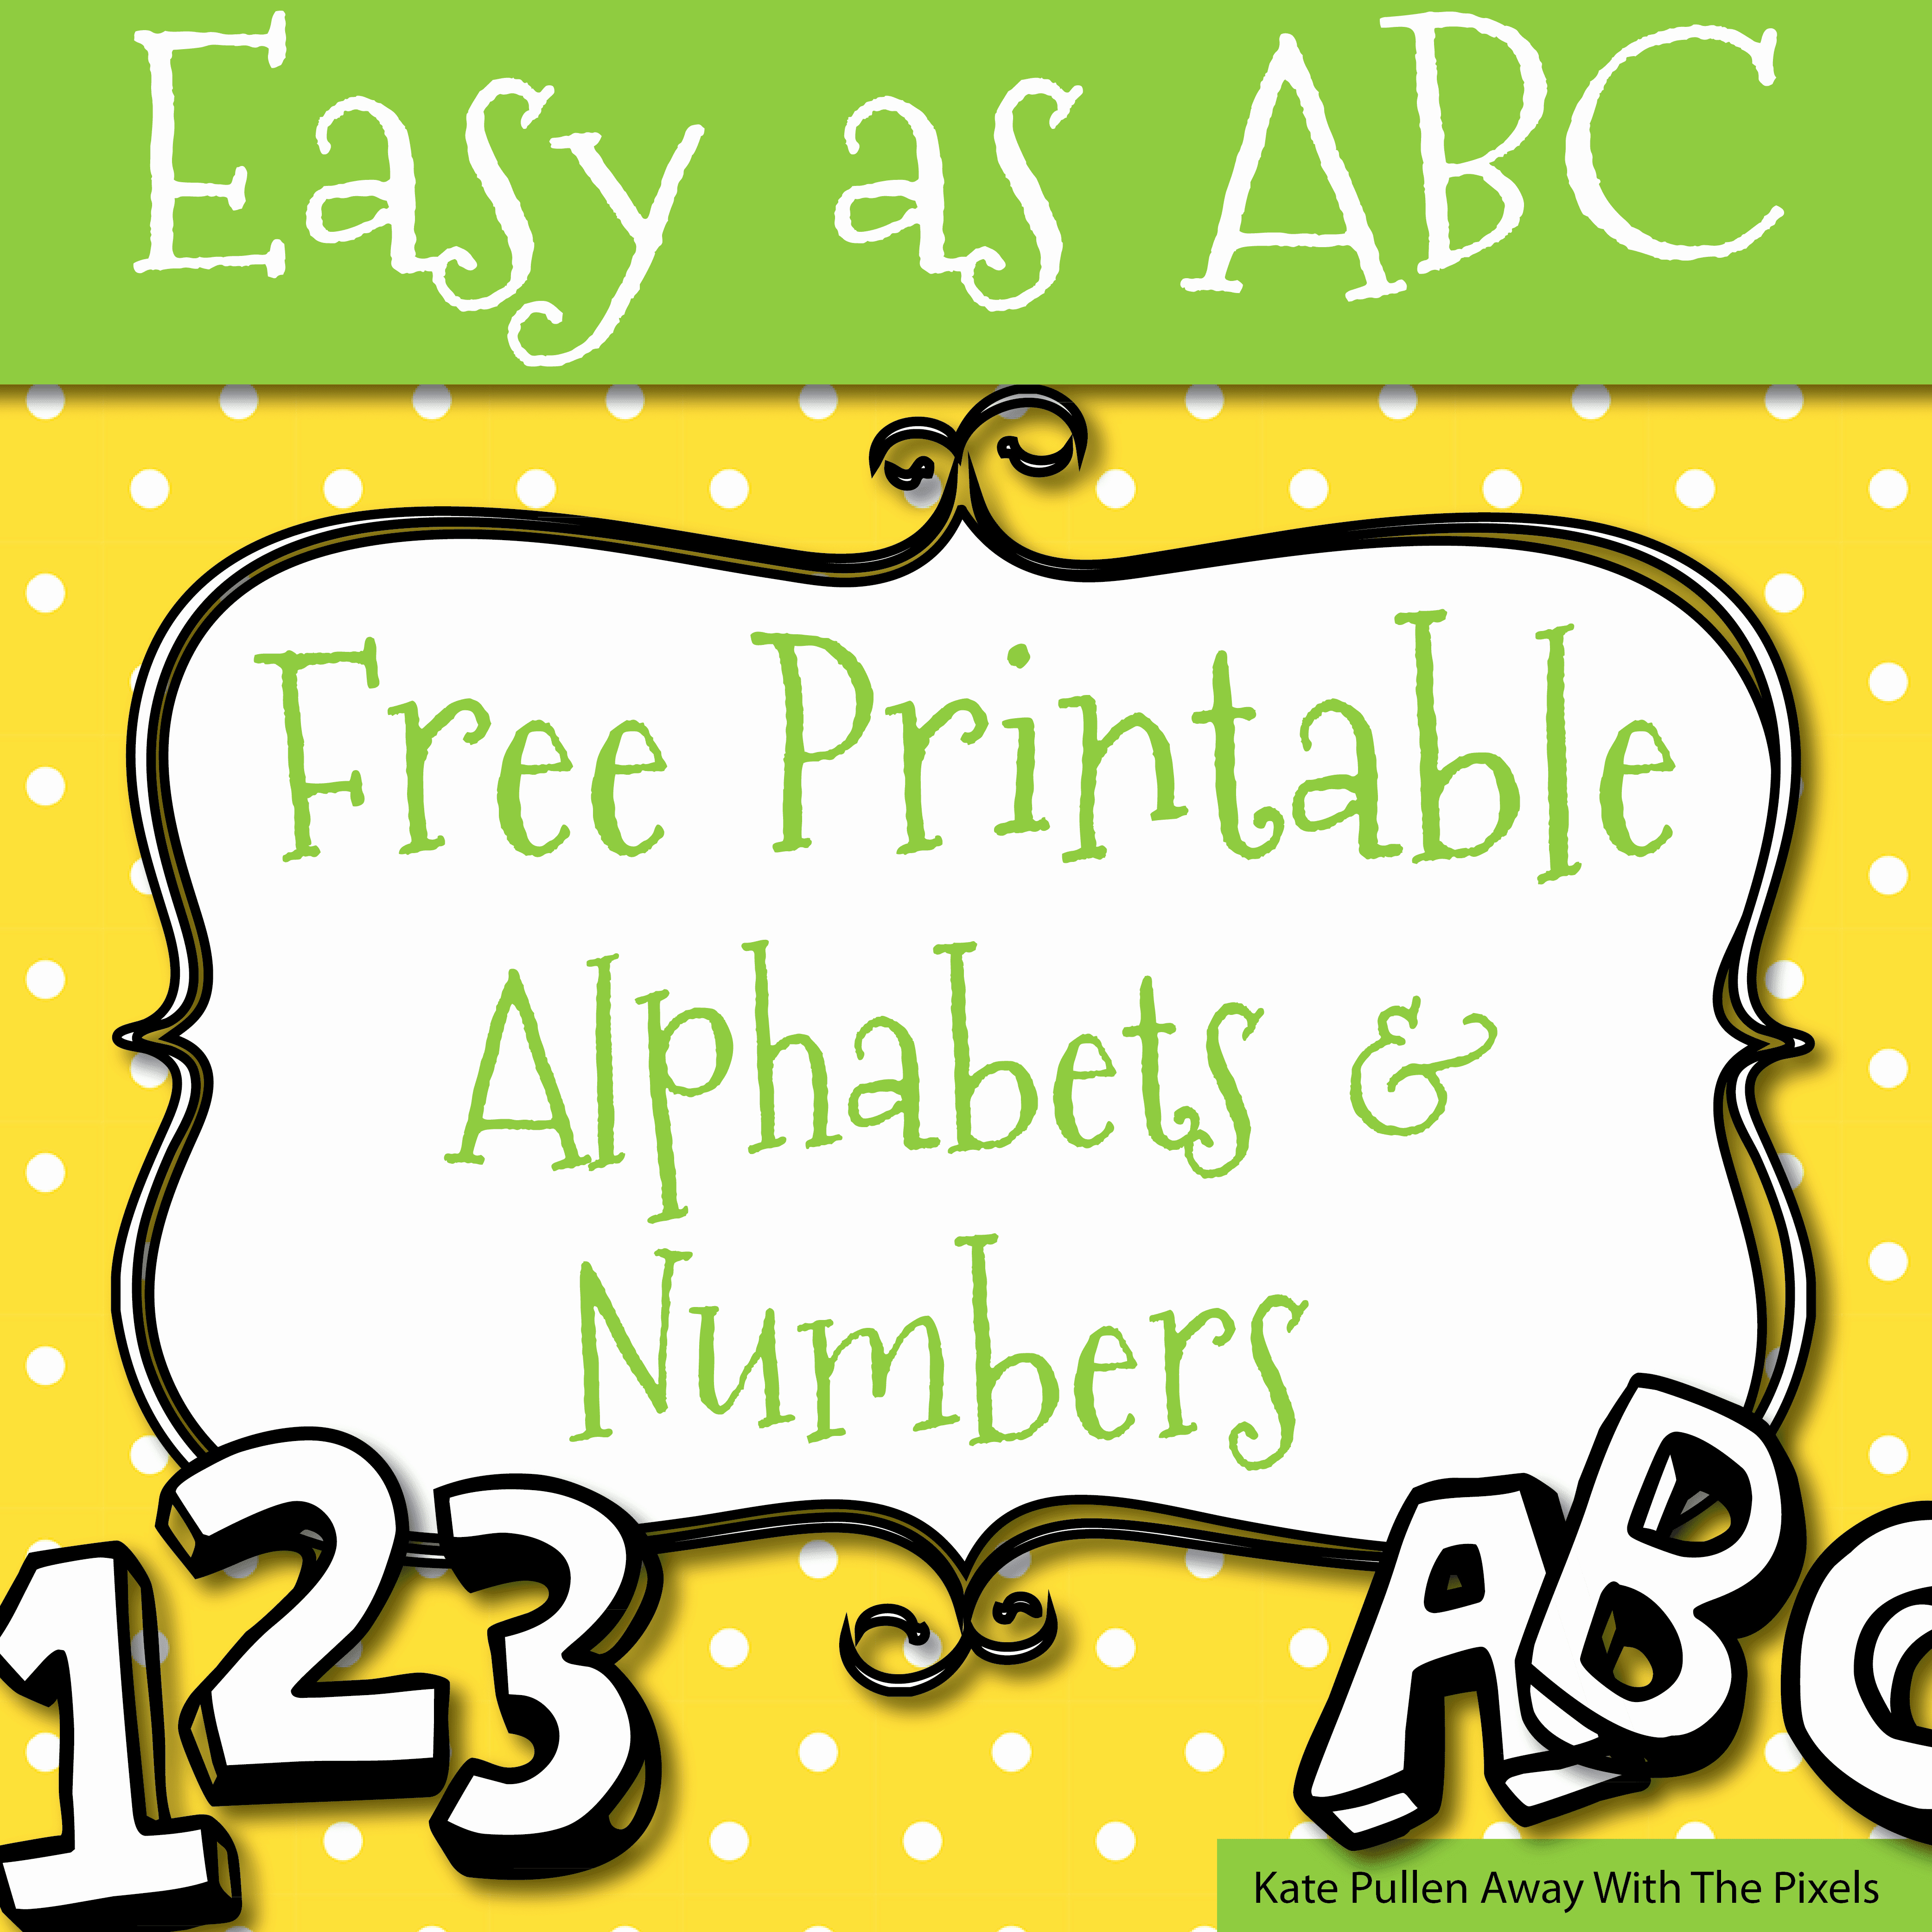 Alphabet Letters with Pictures Elegant Free Printable Letters and Numbers for Crafts